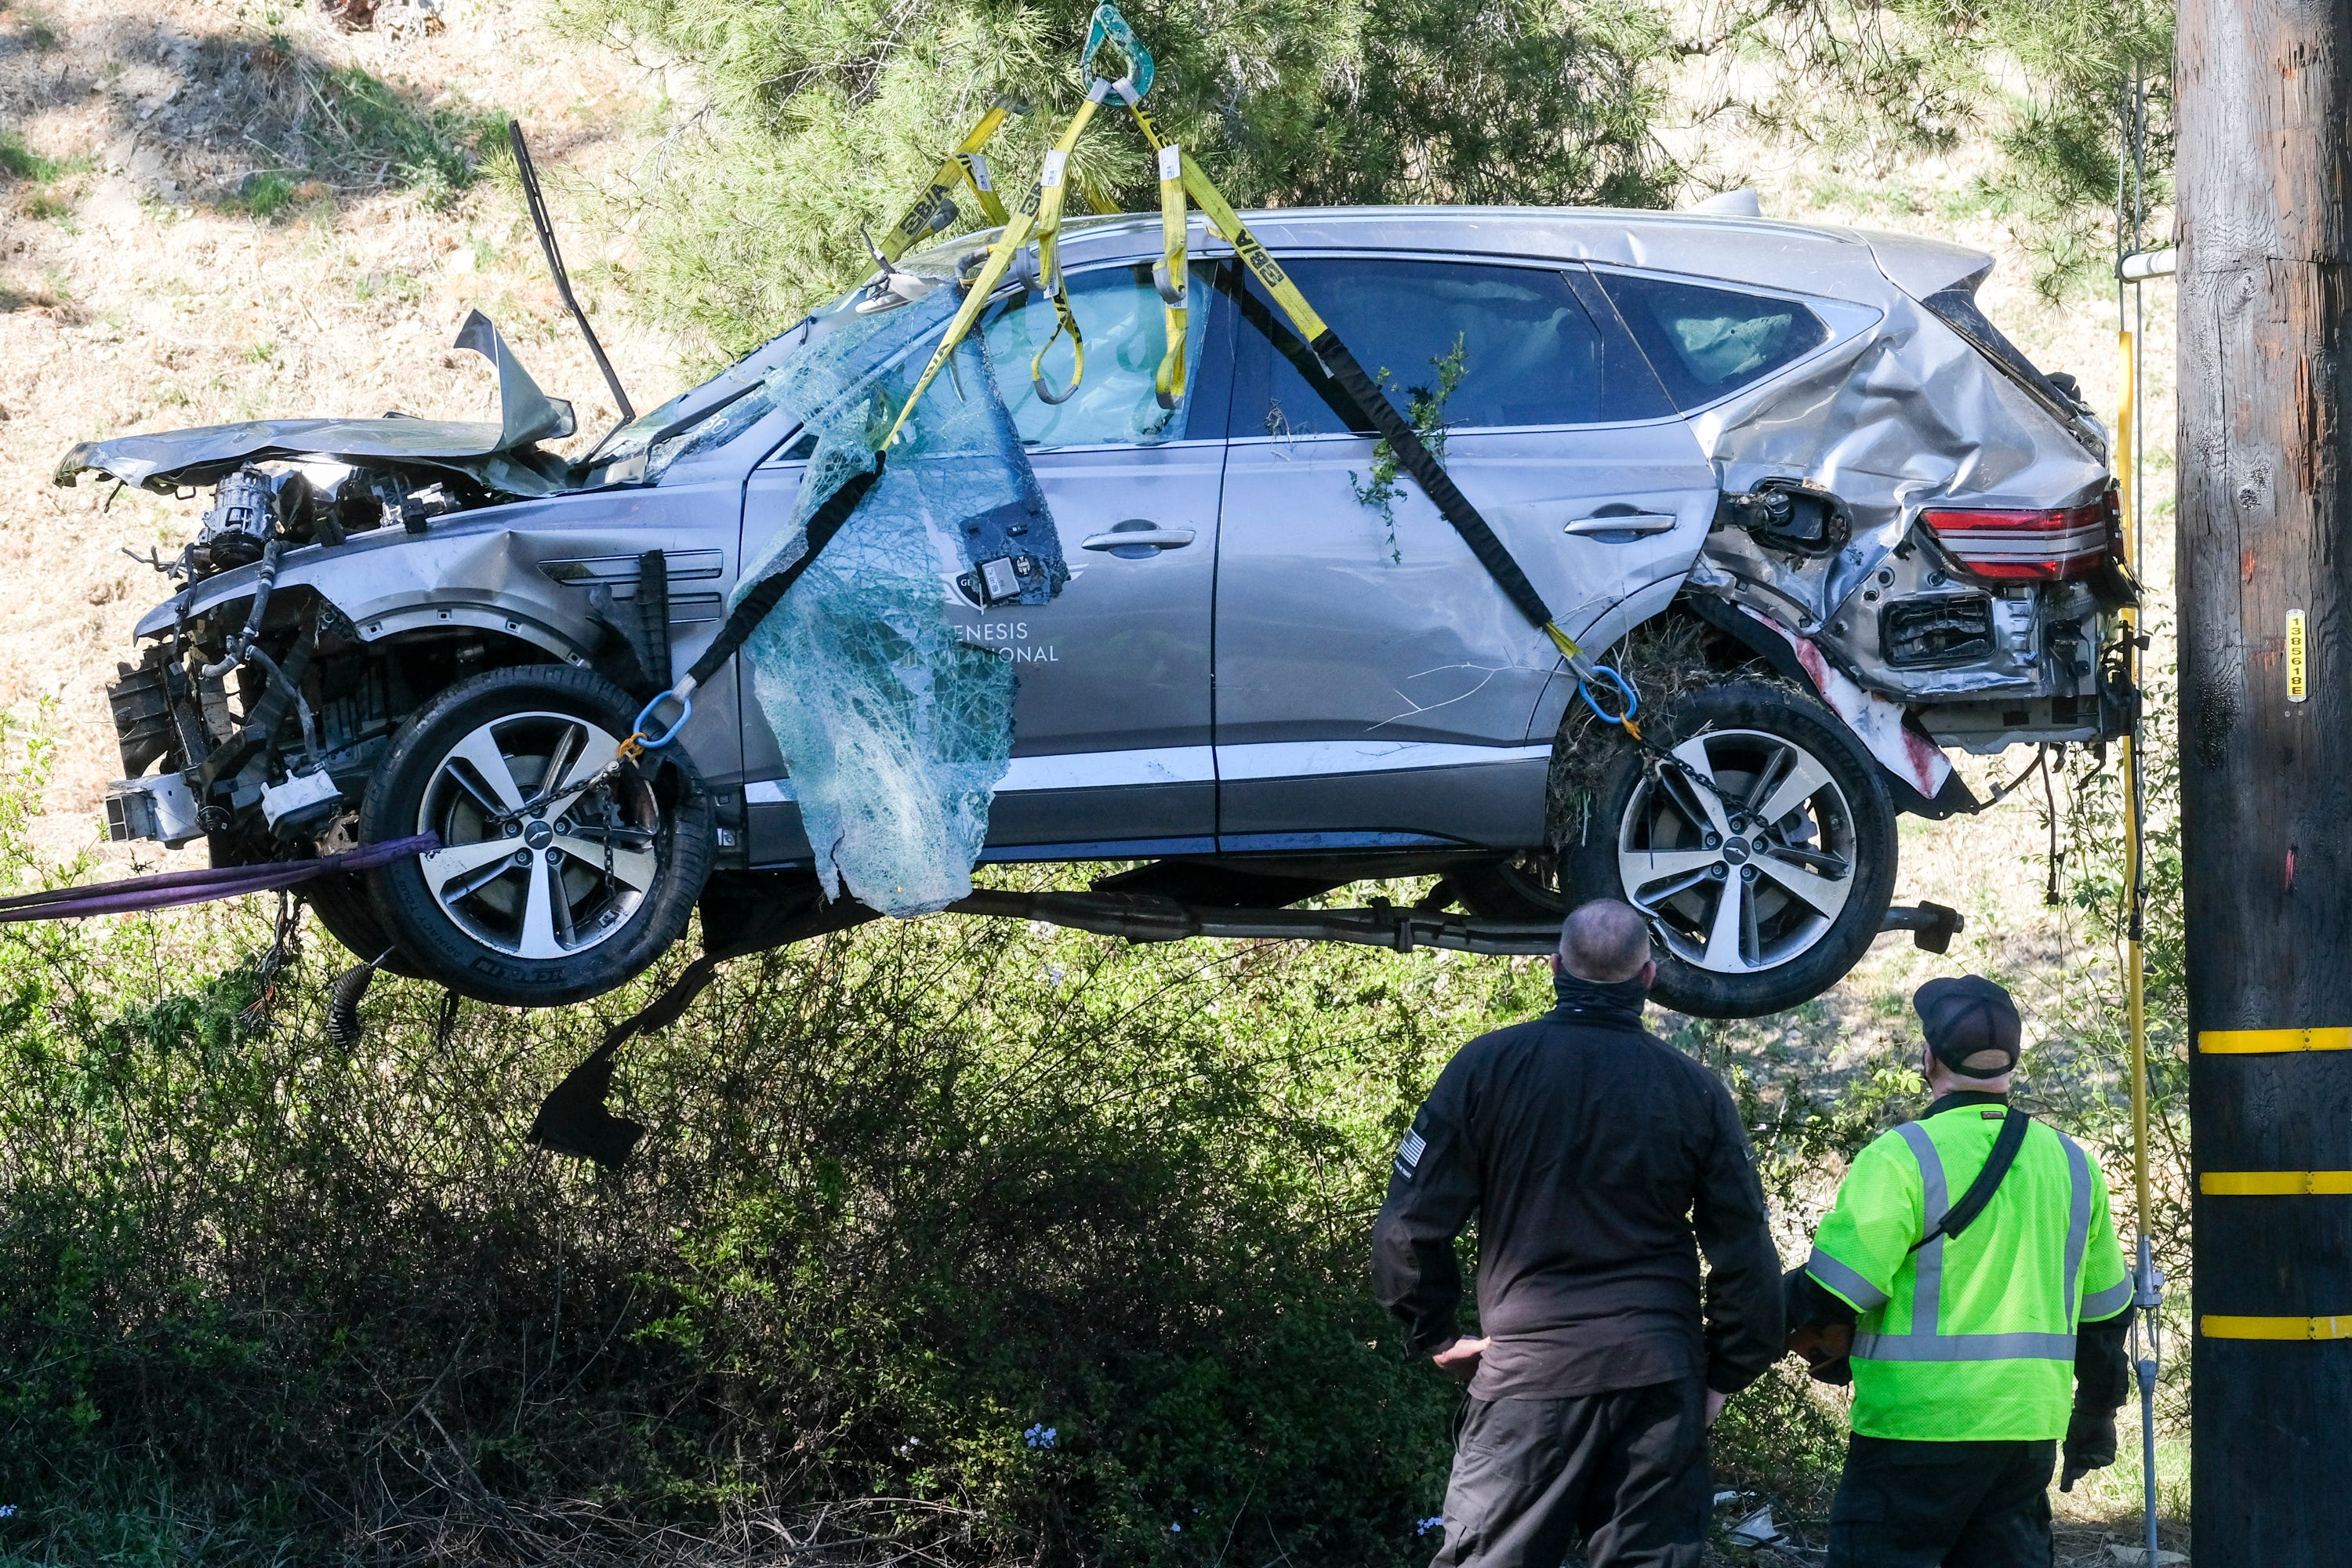 Woods was driving almost 90 mph when he crashed SUV near LA 1